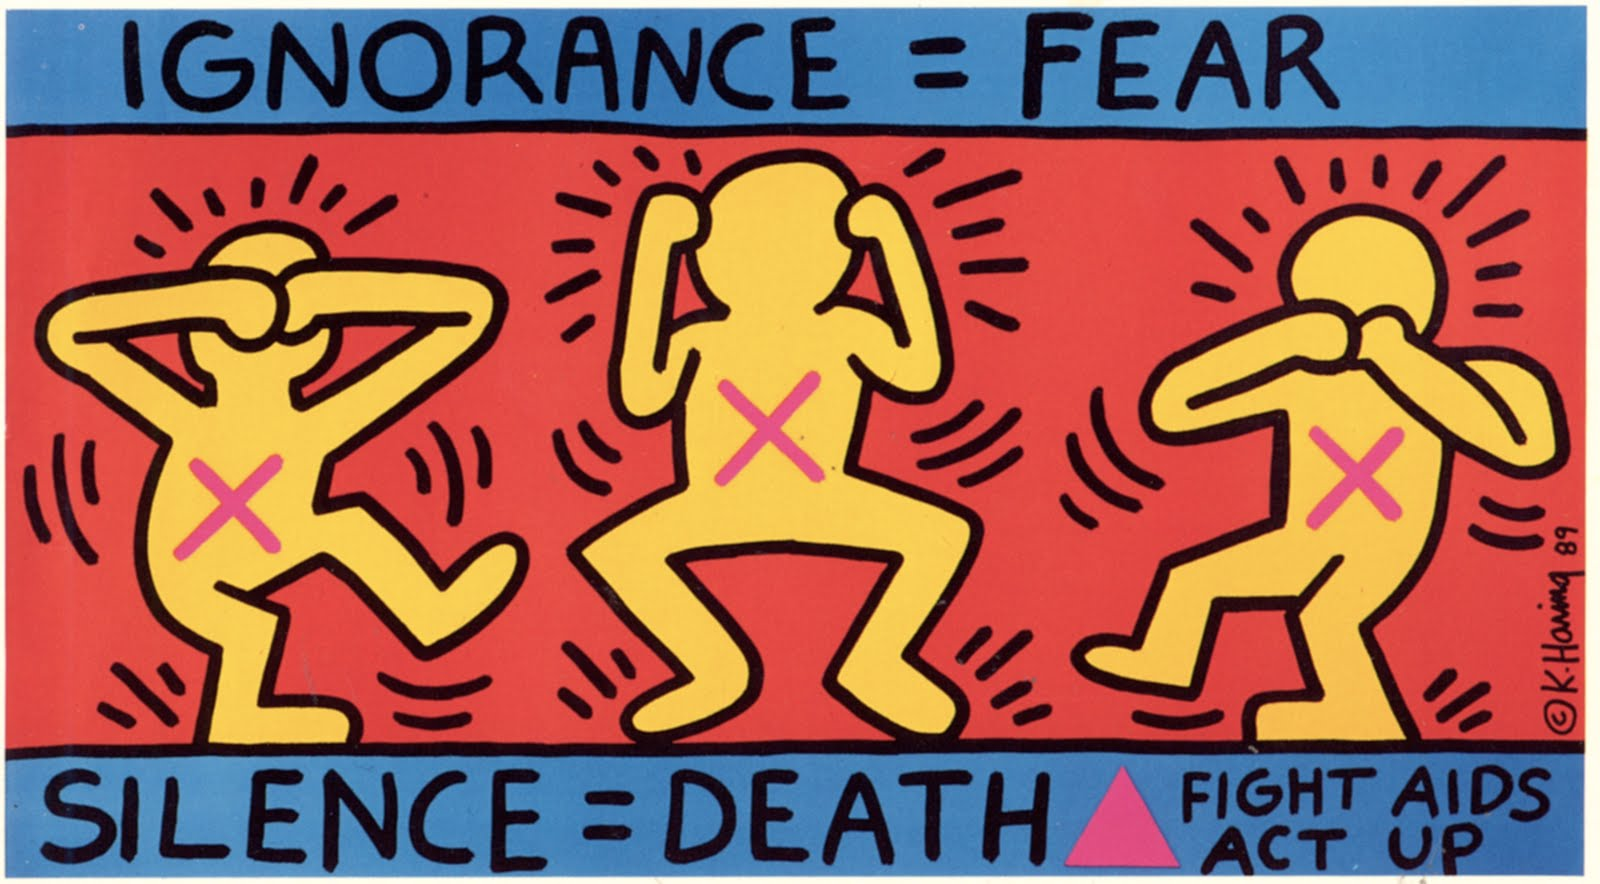 Ignorance=Fear  Keith Haring